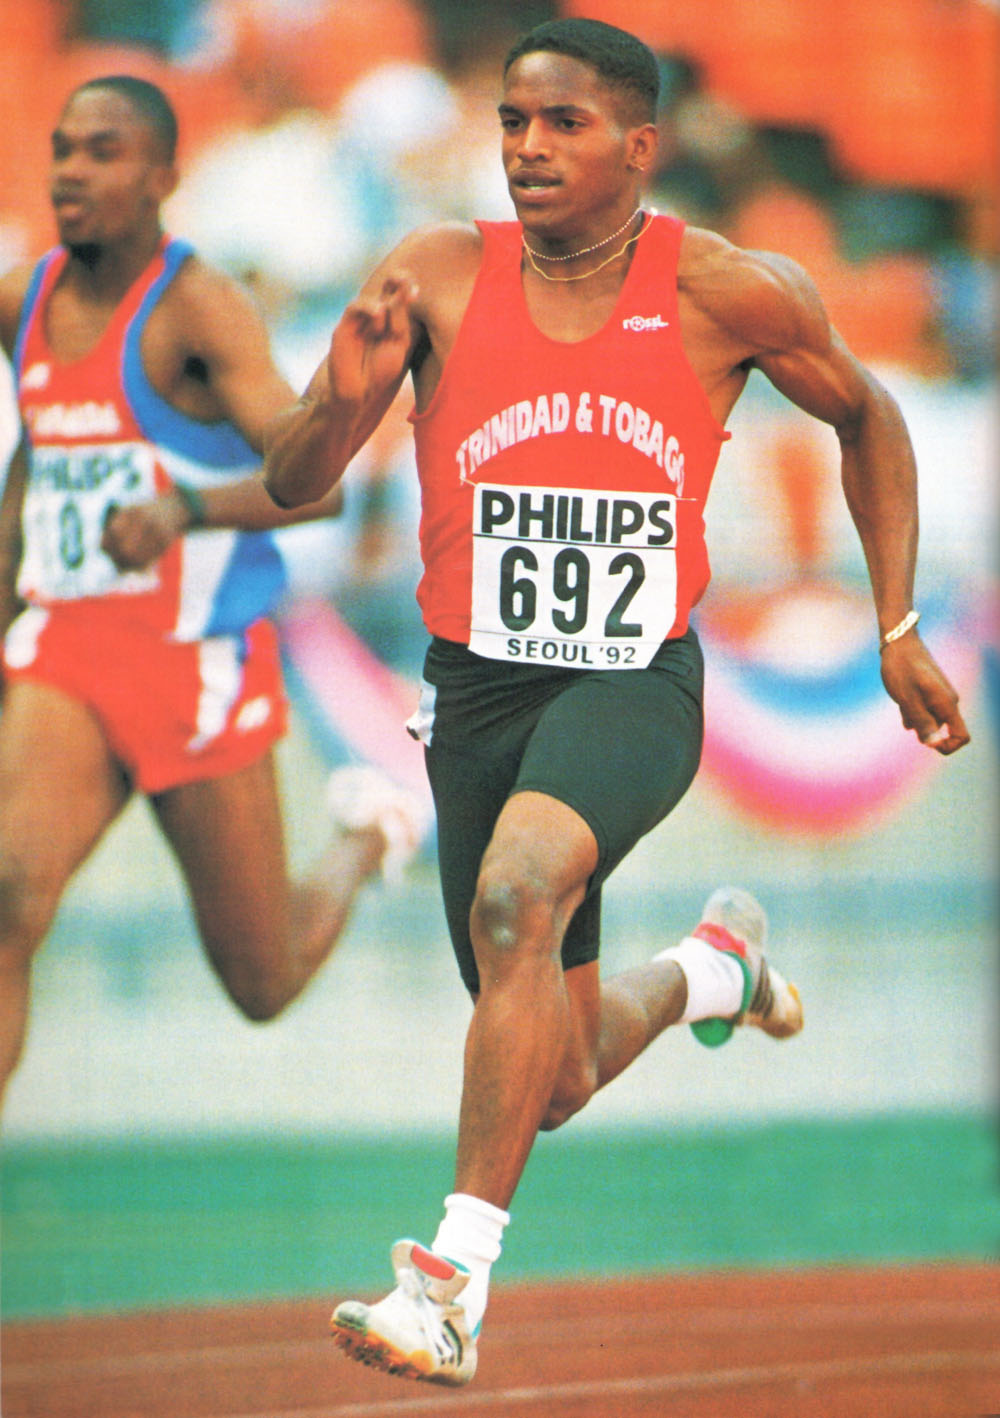 Ato Boldon in action at the World Junior Games in Seoul in 1992, where he won both 100 and 200 metres. Photograph by Gary M. Prior/ Allsport